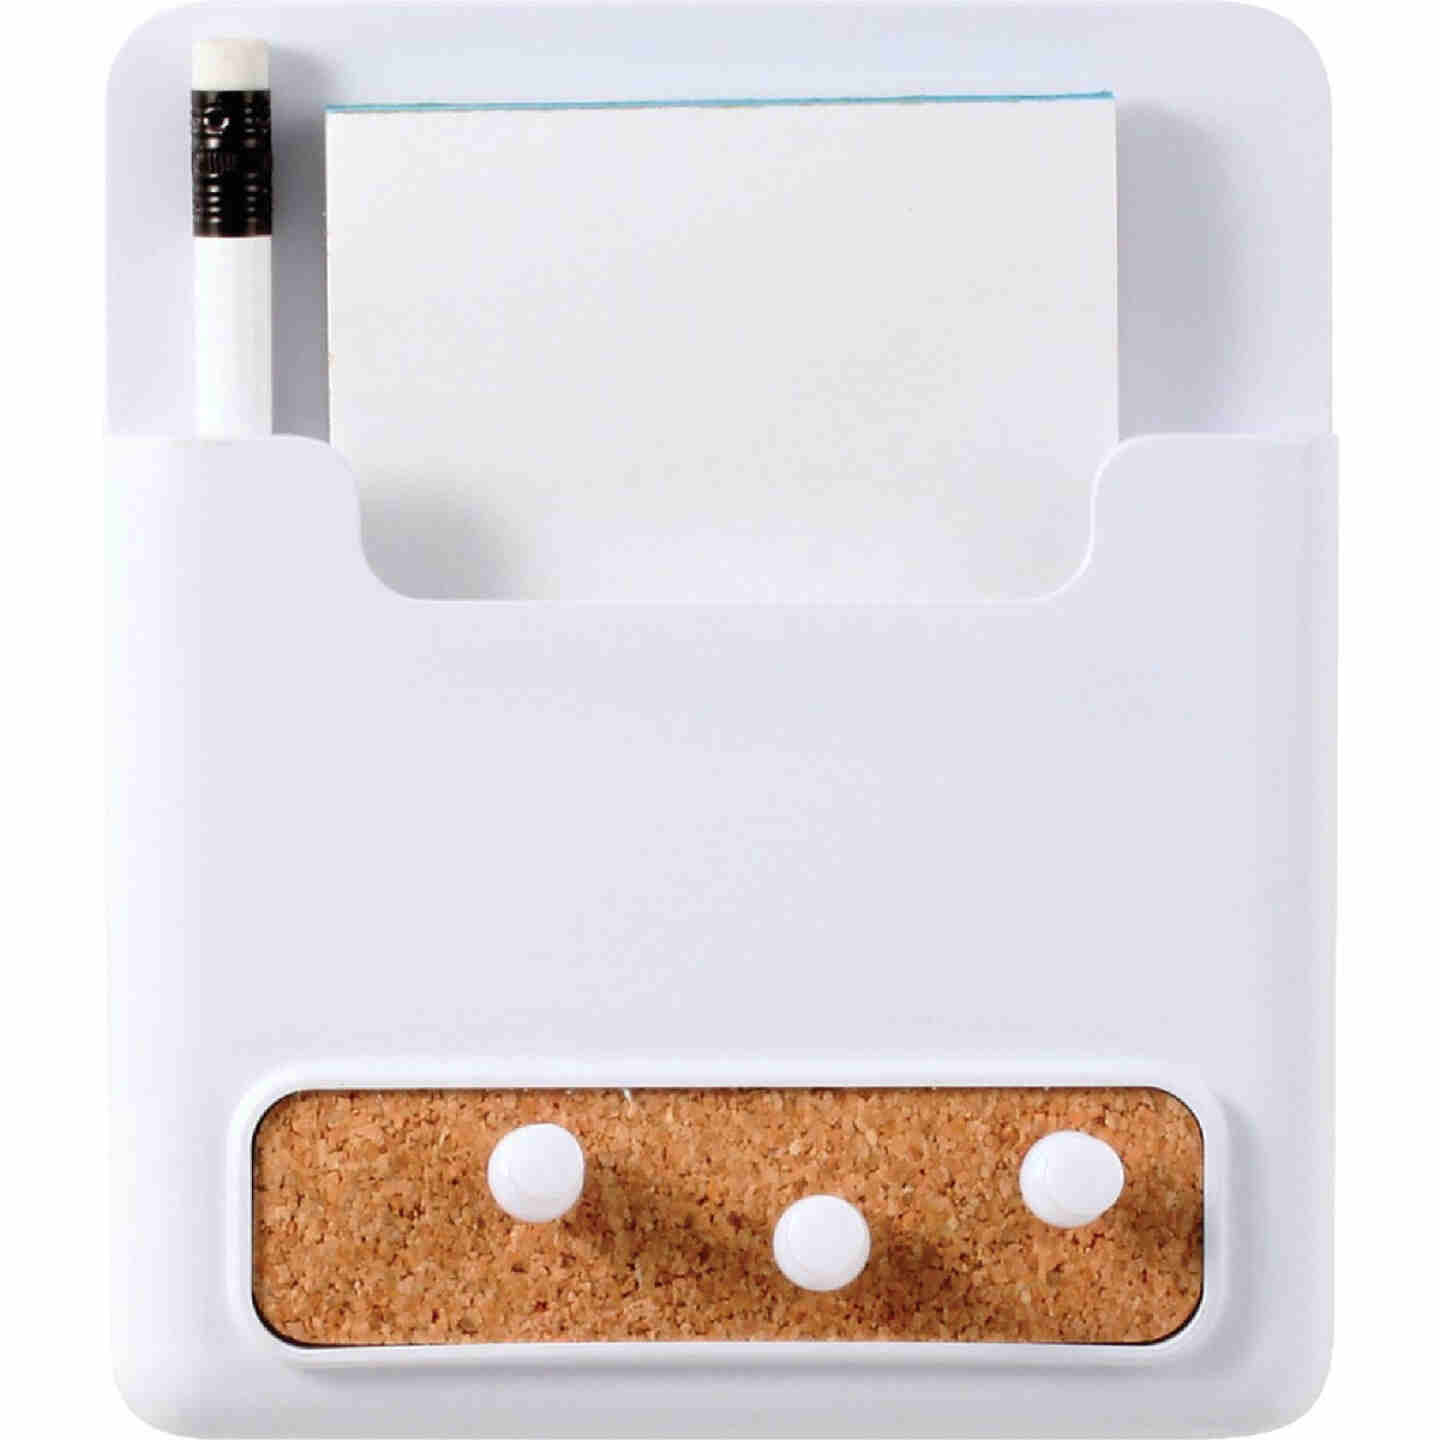 Spectrum 4-3/4 In. x 5-1/2 In. H. x 1 In. D. Magnetic Message Board Image 1